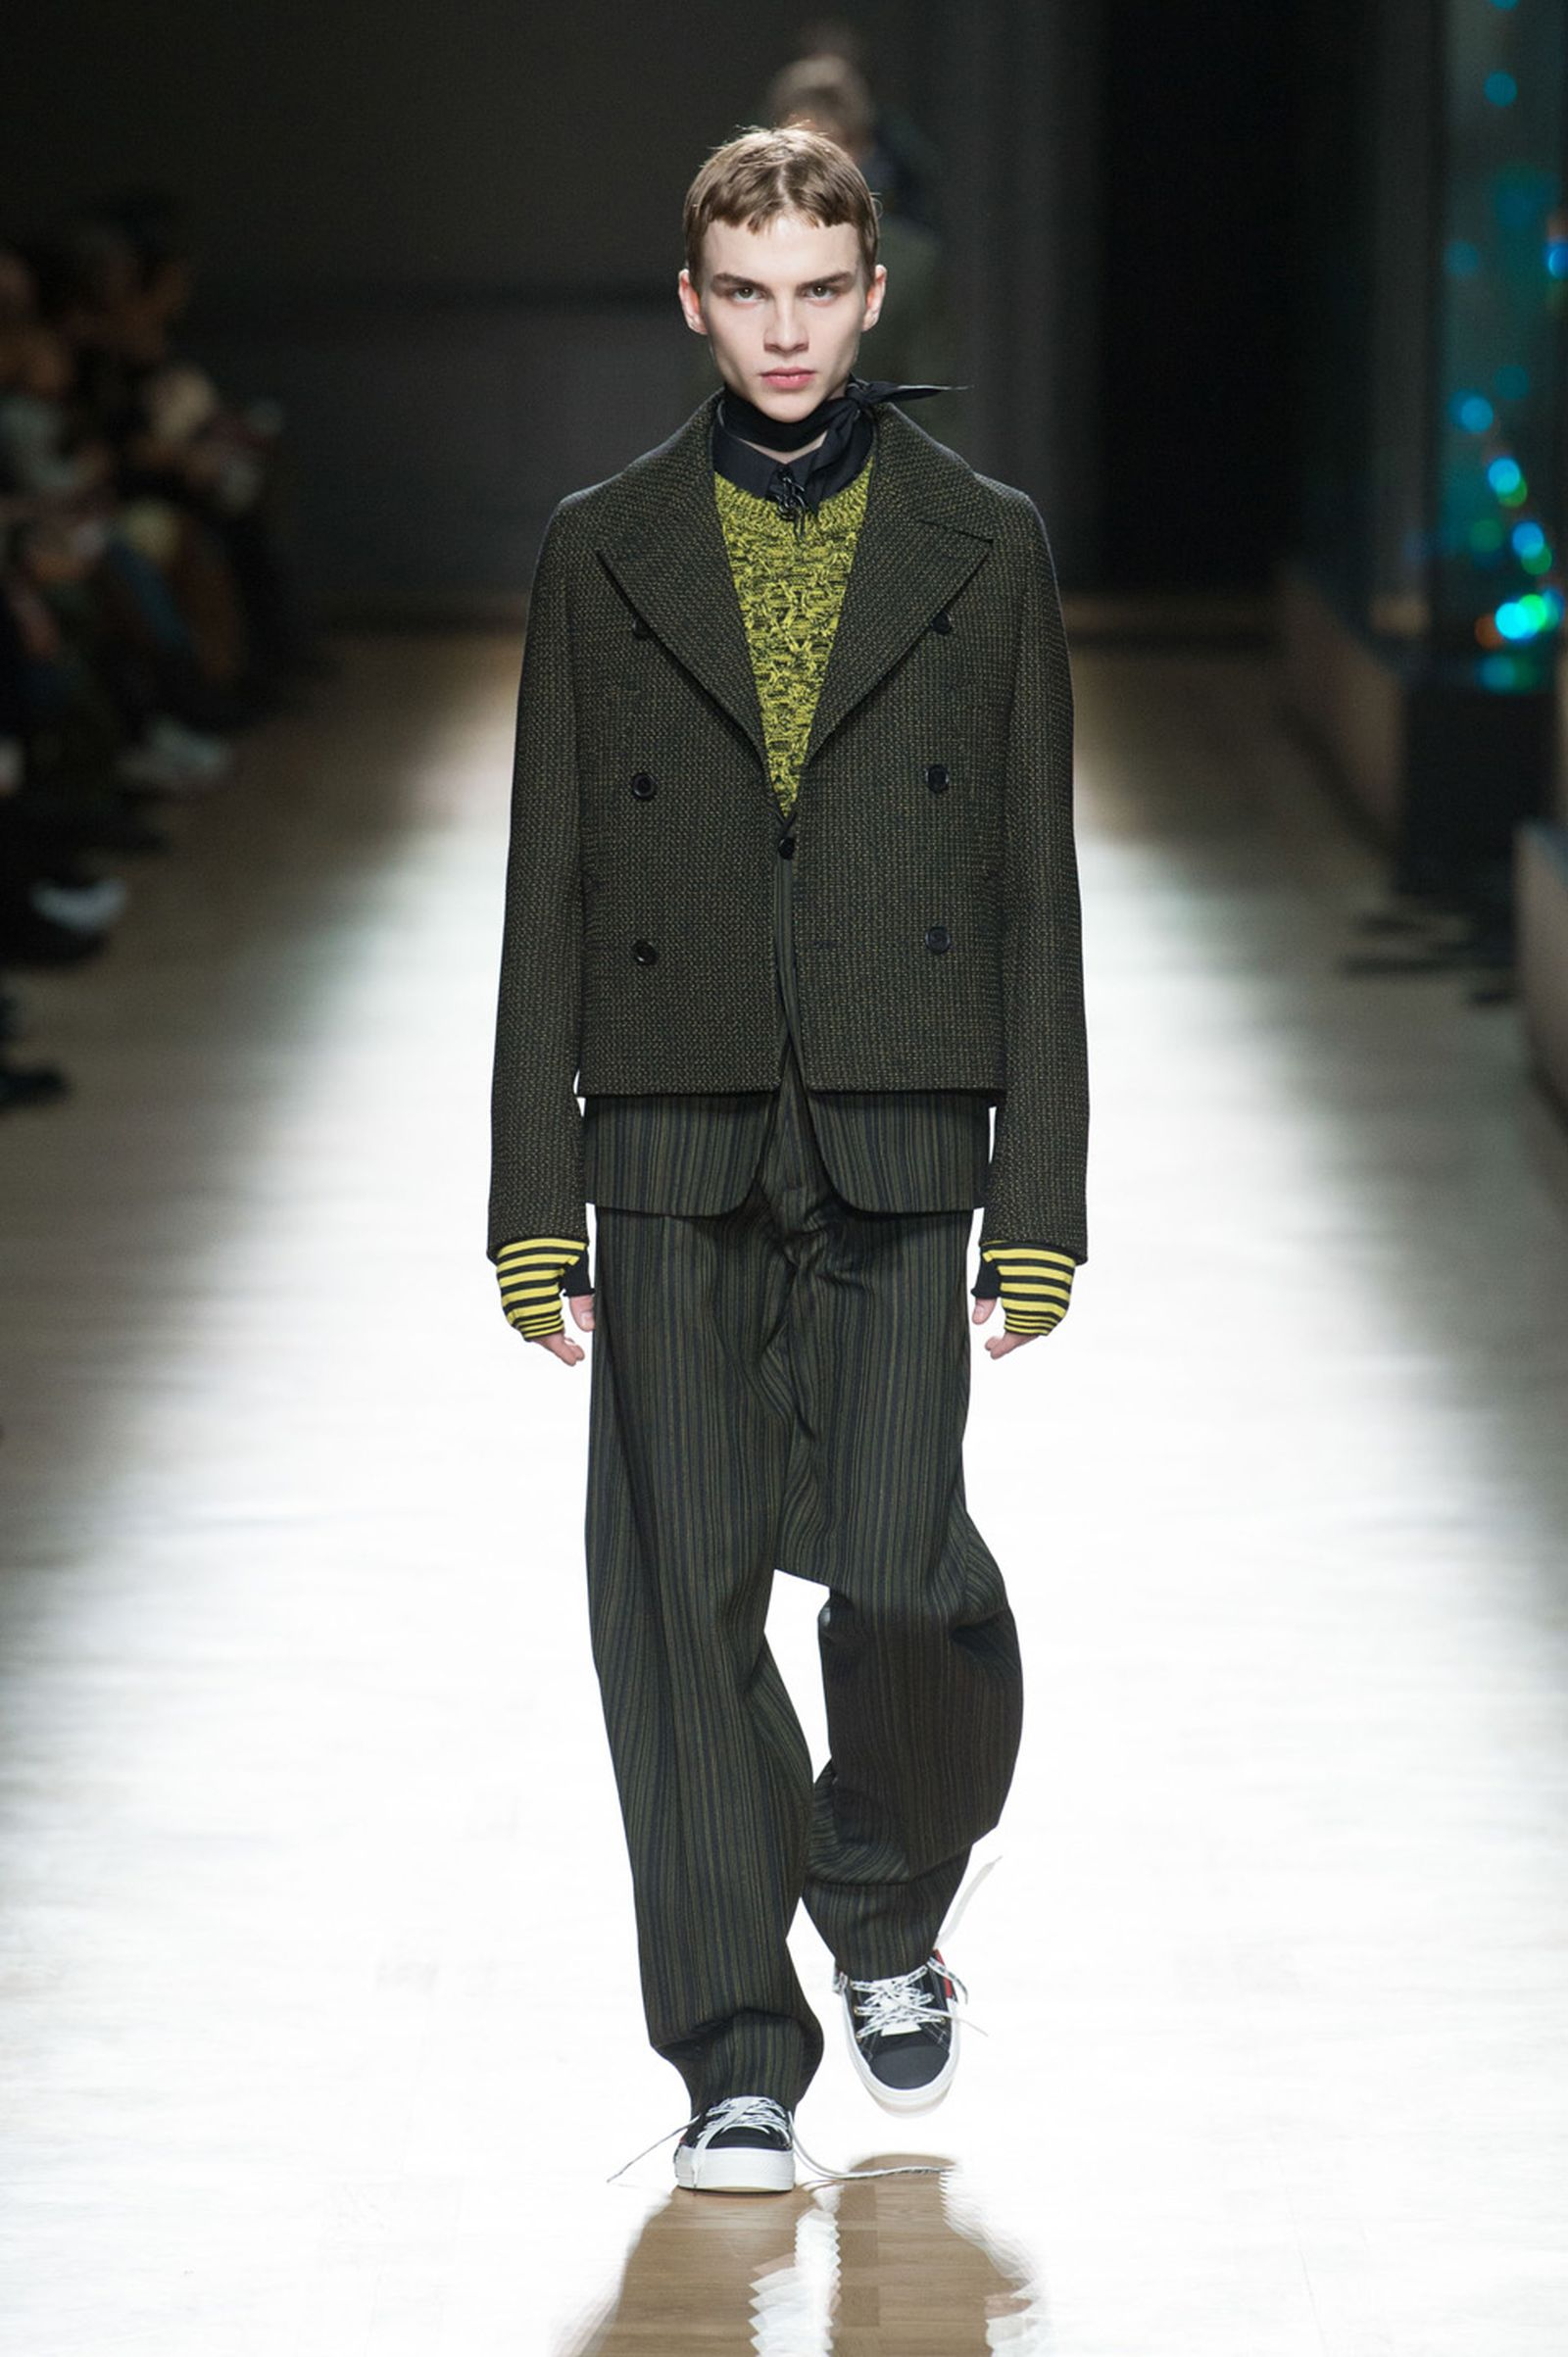 DIOR HOMME WINTER 18 19 BY PATRICE STABLE look38 Fall/WInter 2018 runway